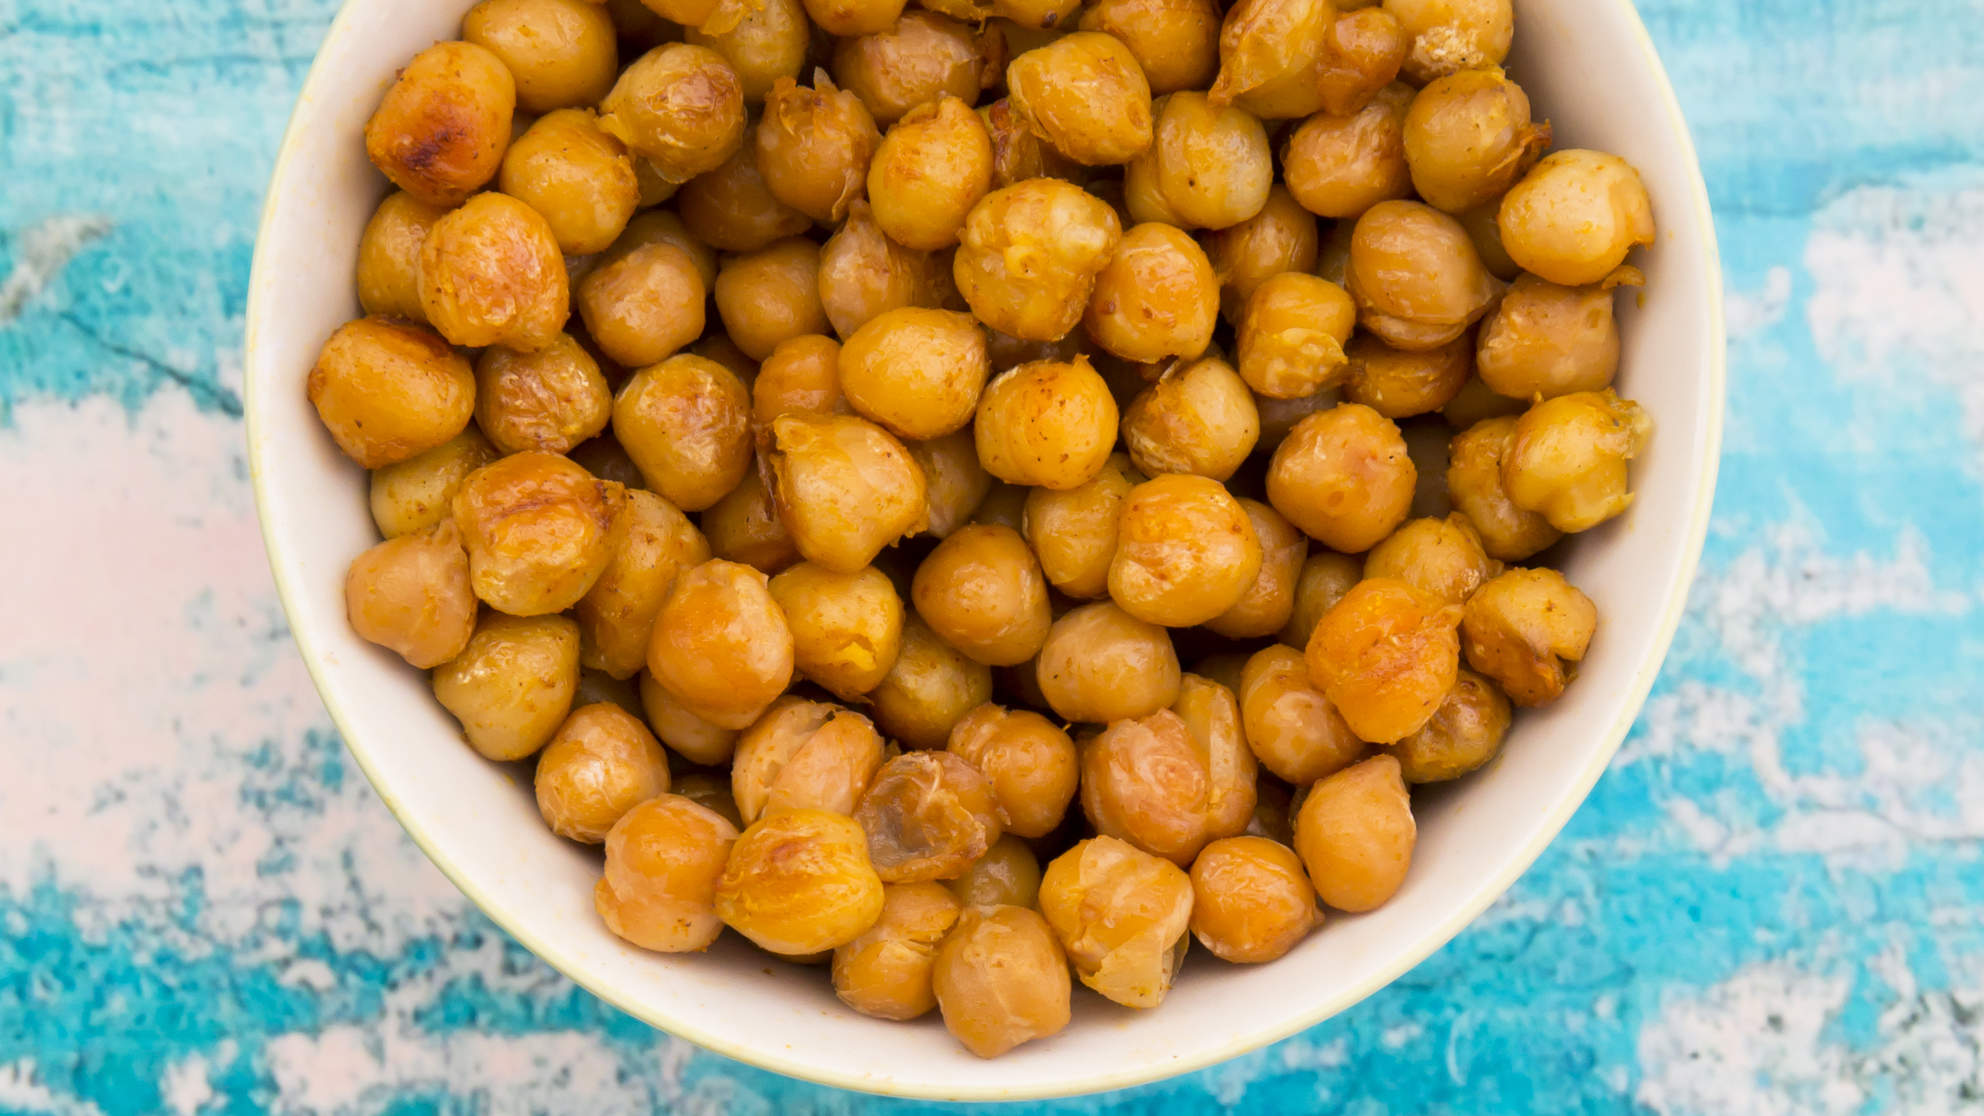 roasted chickpeas snacks for weightloss